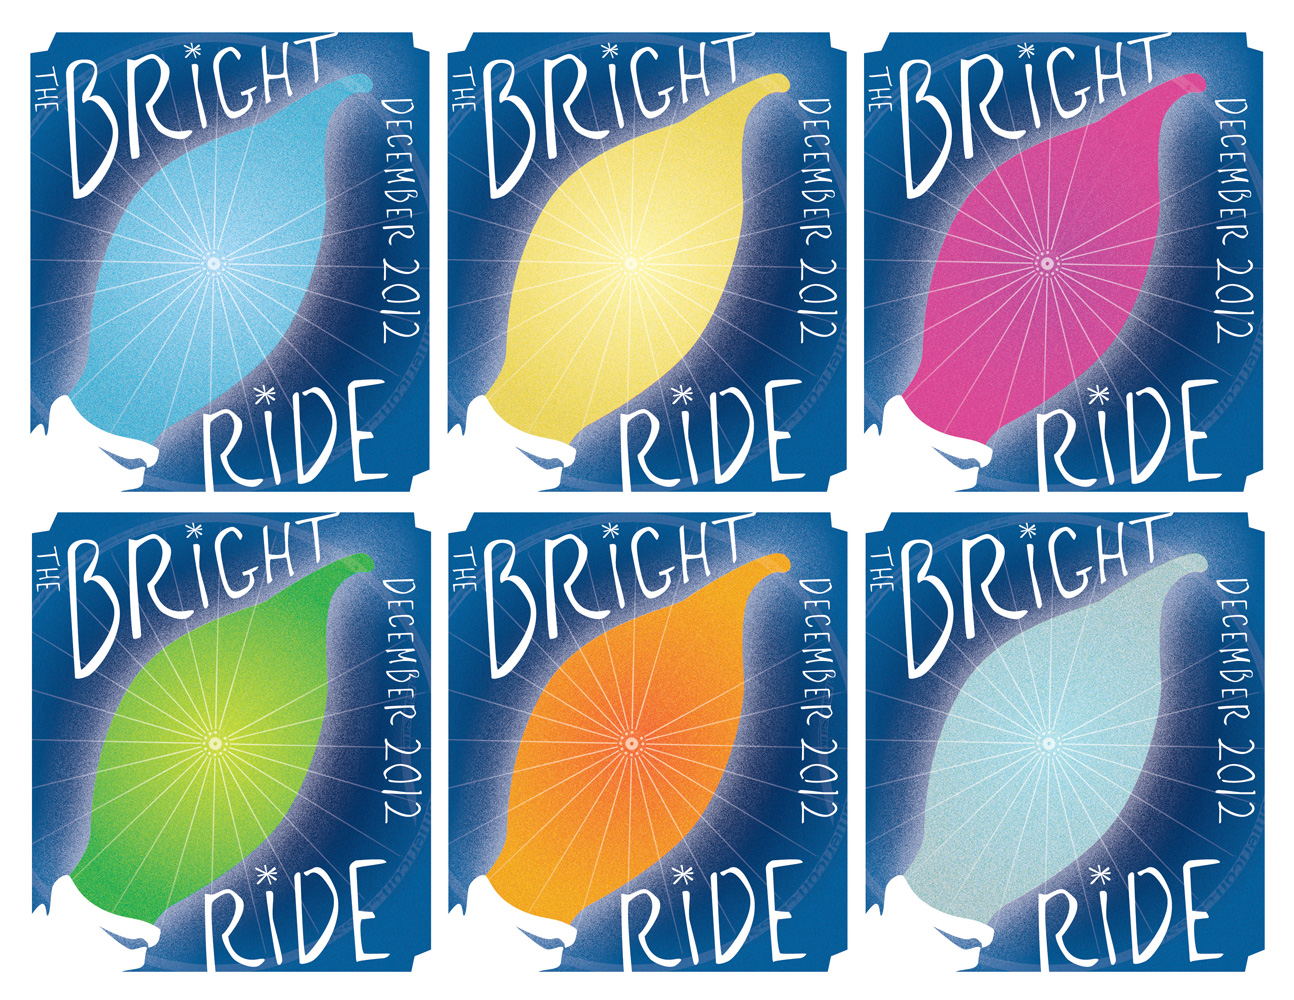 """Bright Ride Spoke Card, 2012. Color variations. Individual cards 4.25"""" x 5.5""""."""